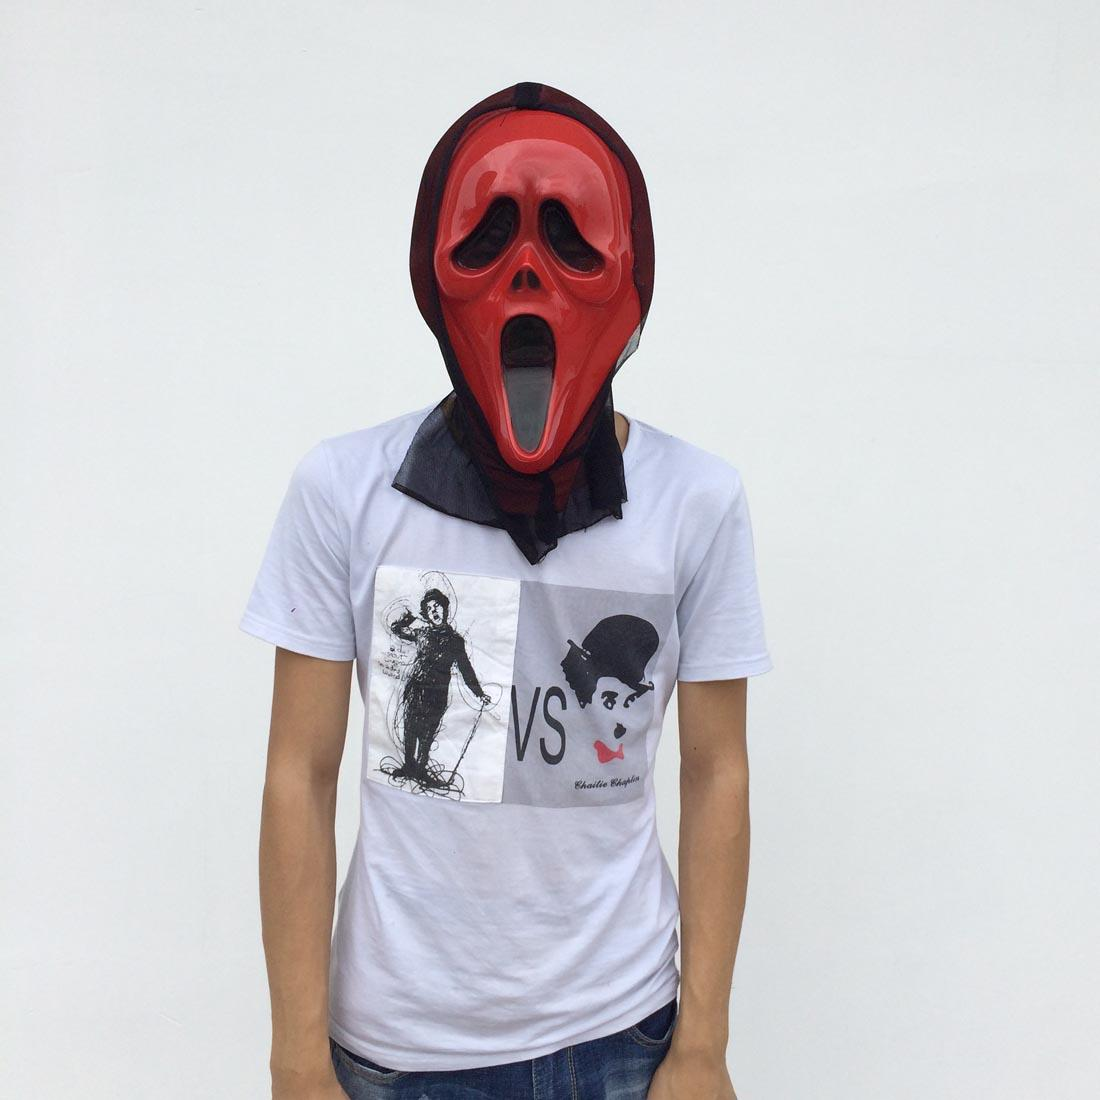 On Sale Red Ghost Mask with Black Glauze Full Face Halloween Party Mask Scary Devil Costume red color